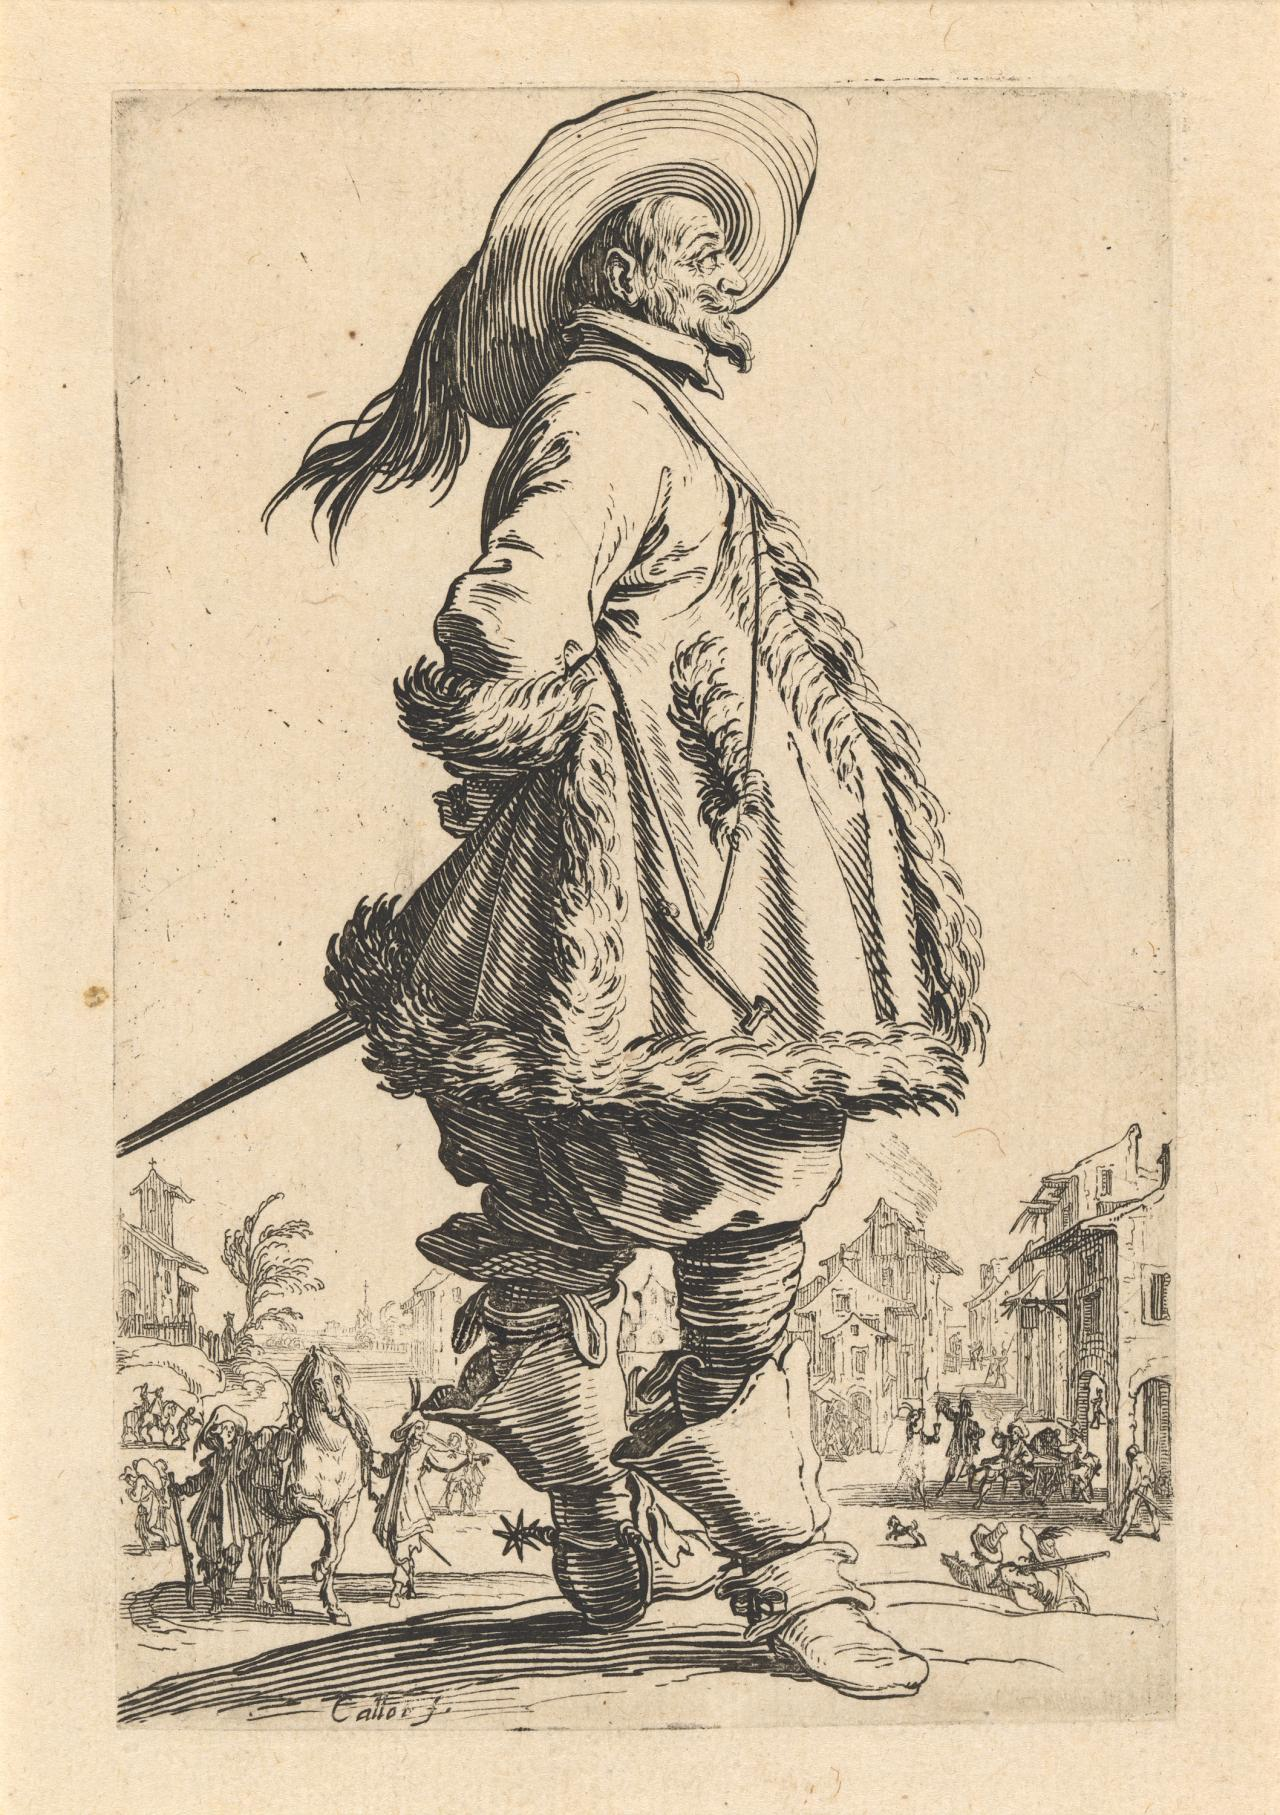 Nobleman with fur-trimmed mantle holding his hands behind his back